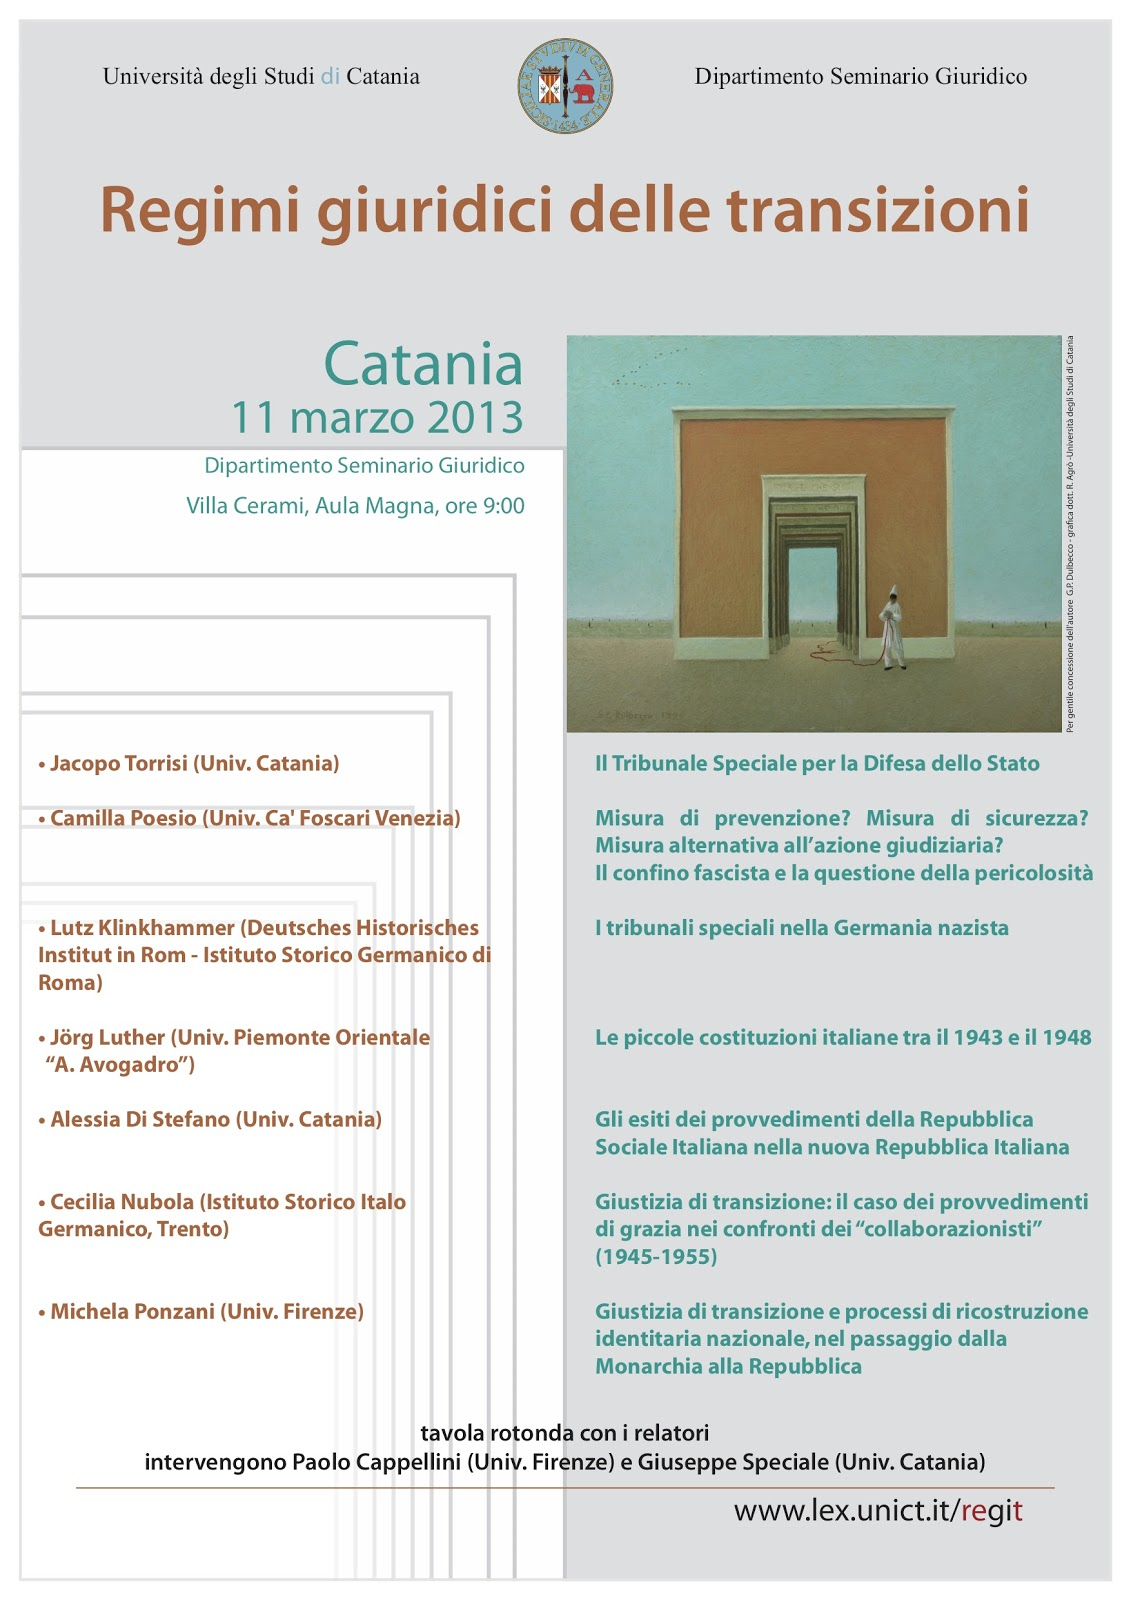 EUROPEAN SOCIETY FOR COMPARATIVE LEGAL HISTORY: March 2013